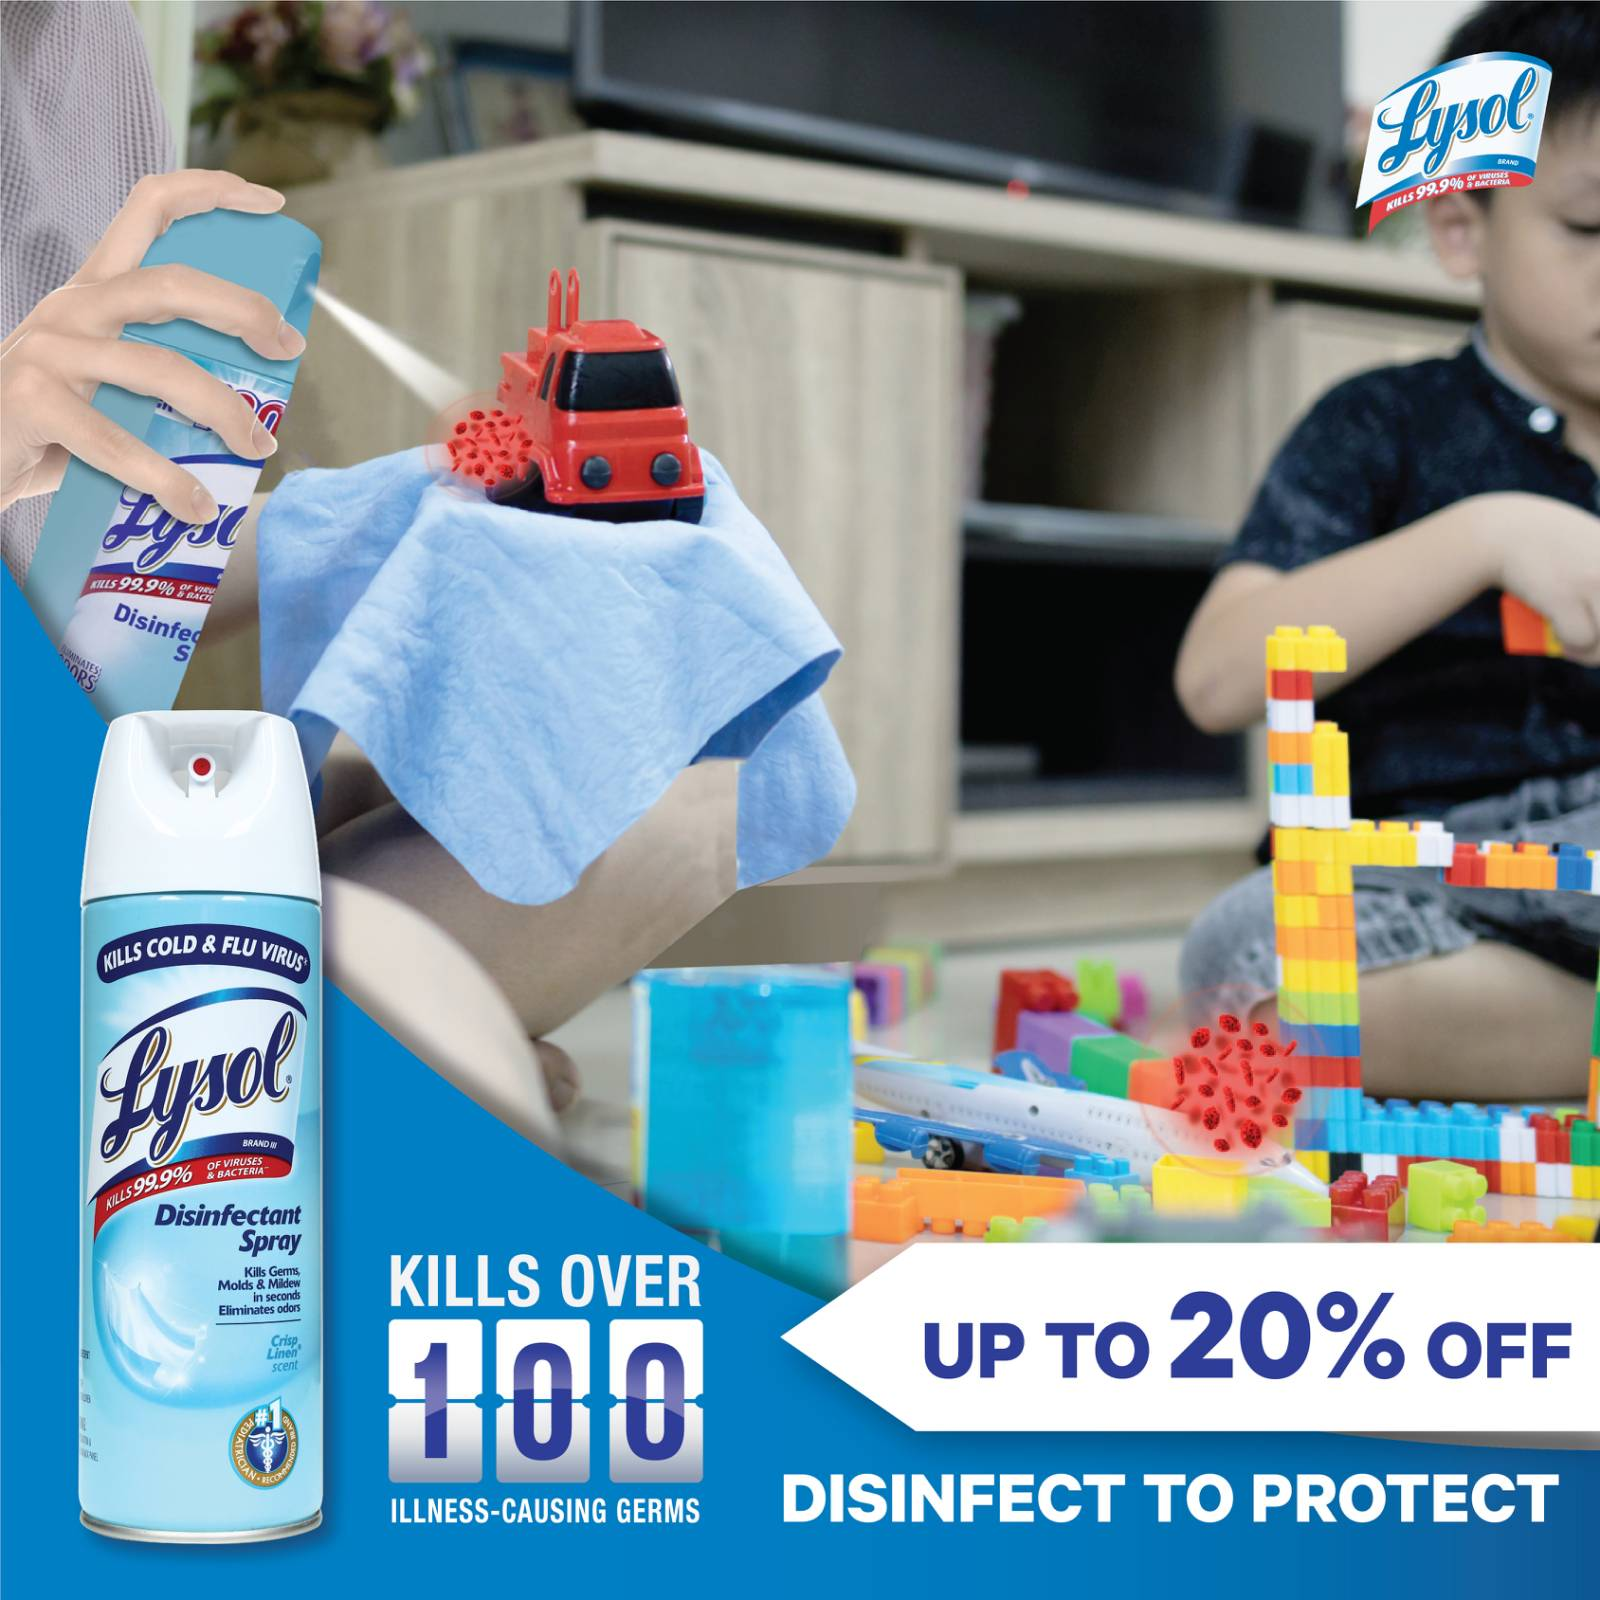 Discounts and generous rebates on Lysol Disinfectant Spray and Multi Action Cleaners in Shopee's 5.5 Sale